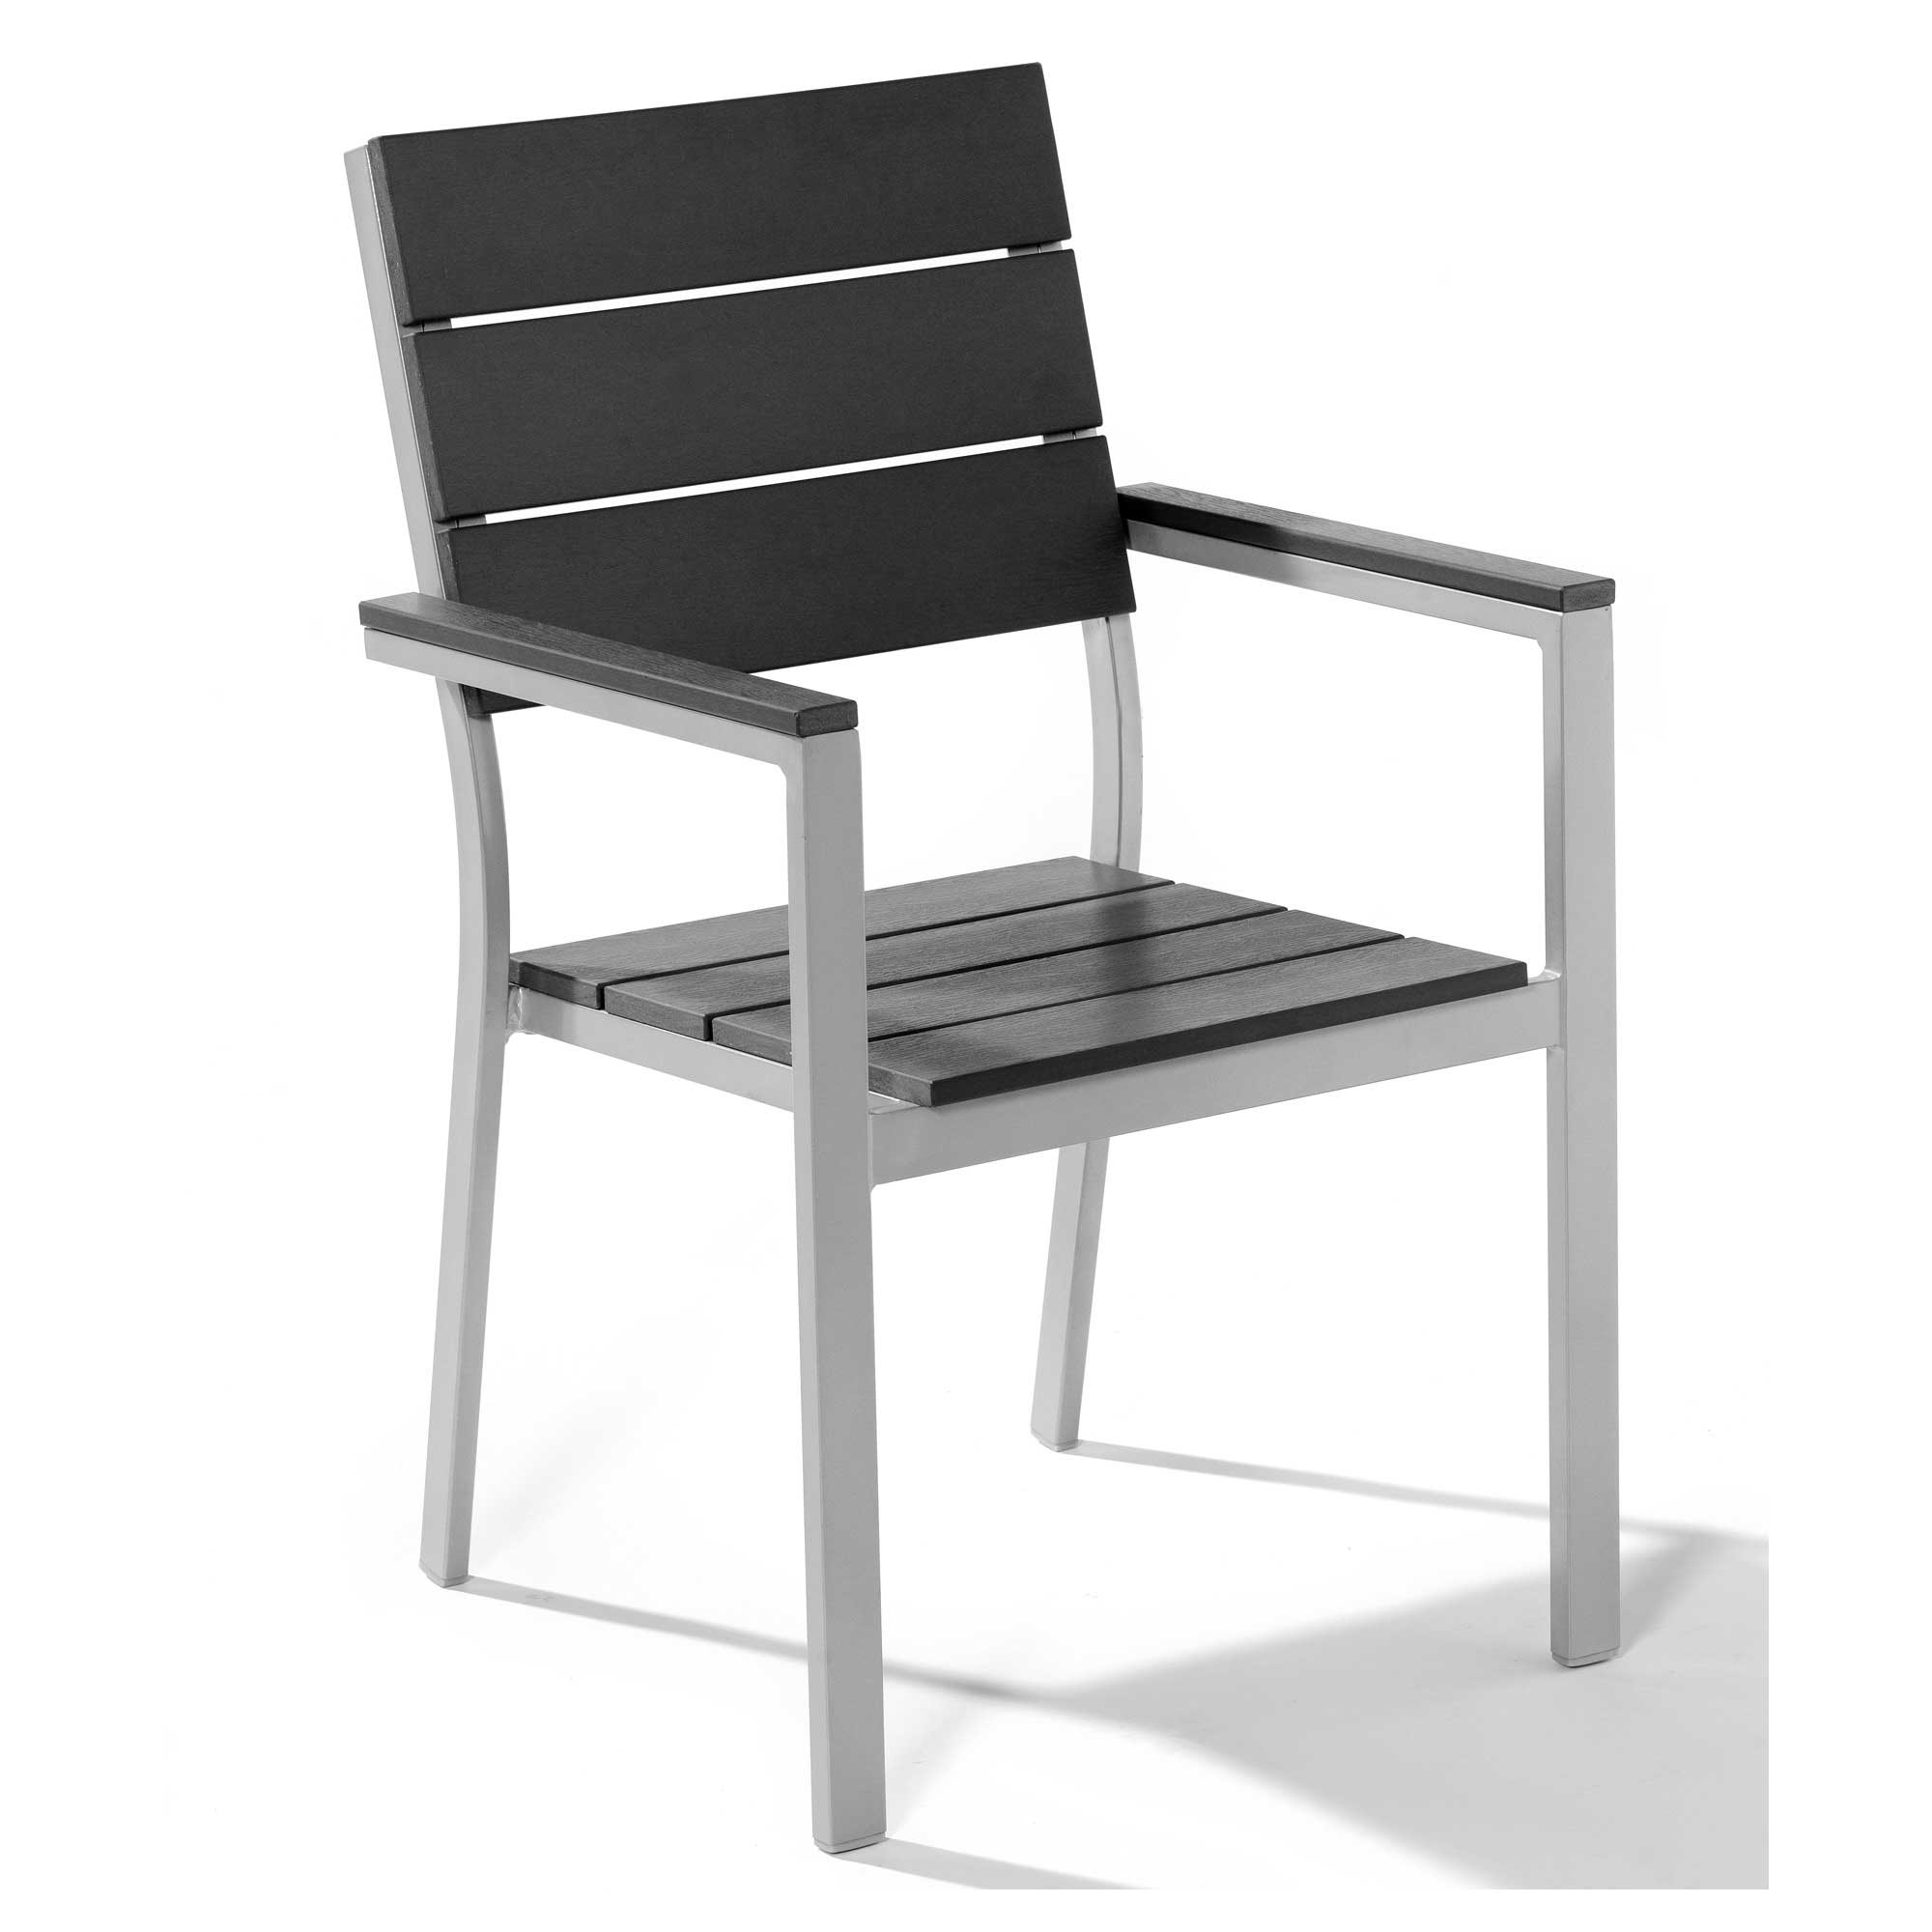 Durable Black Metal Lawn Chair Design